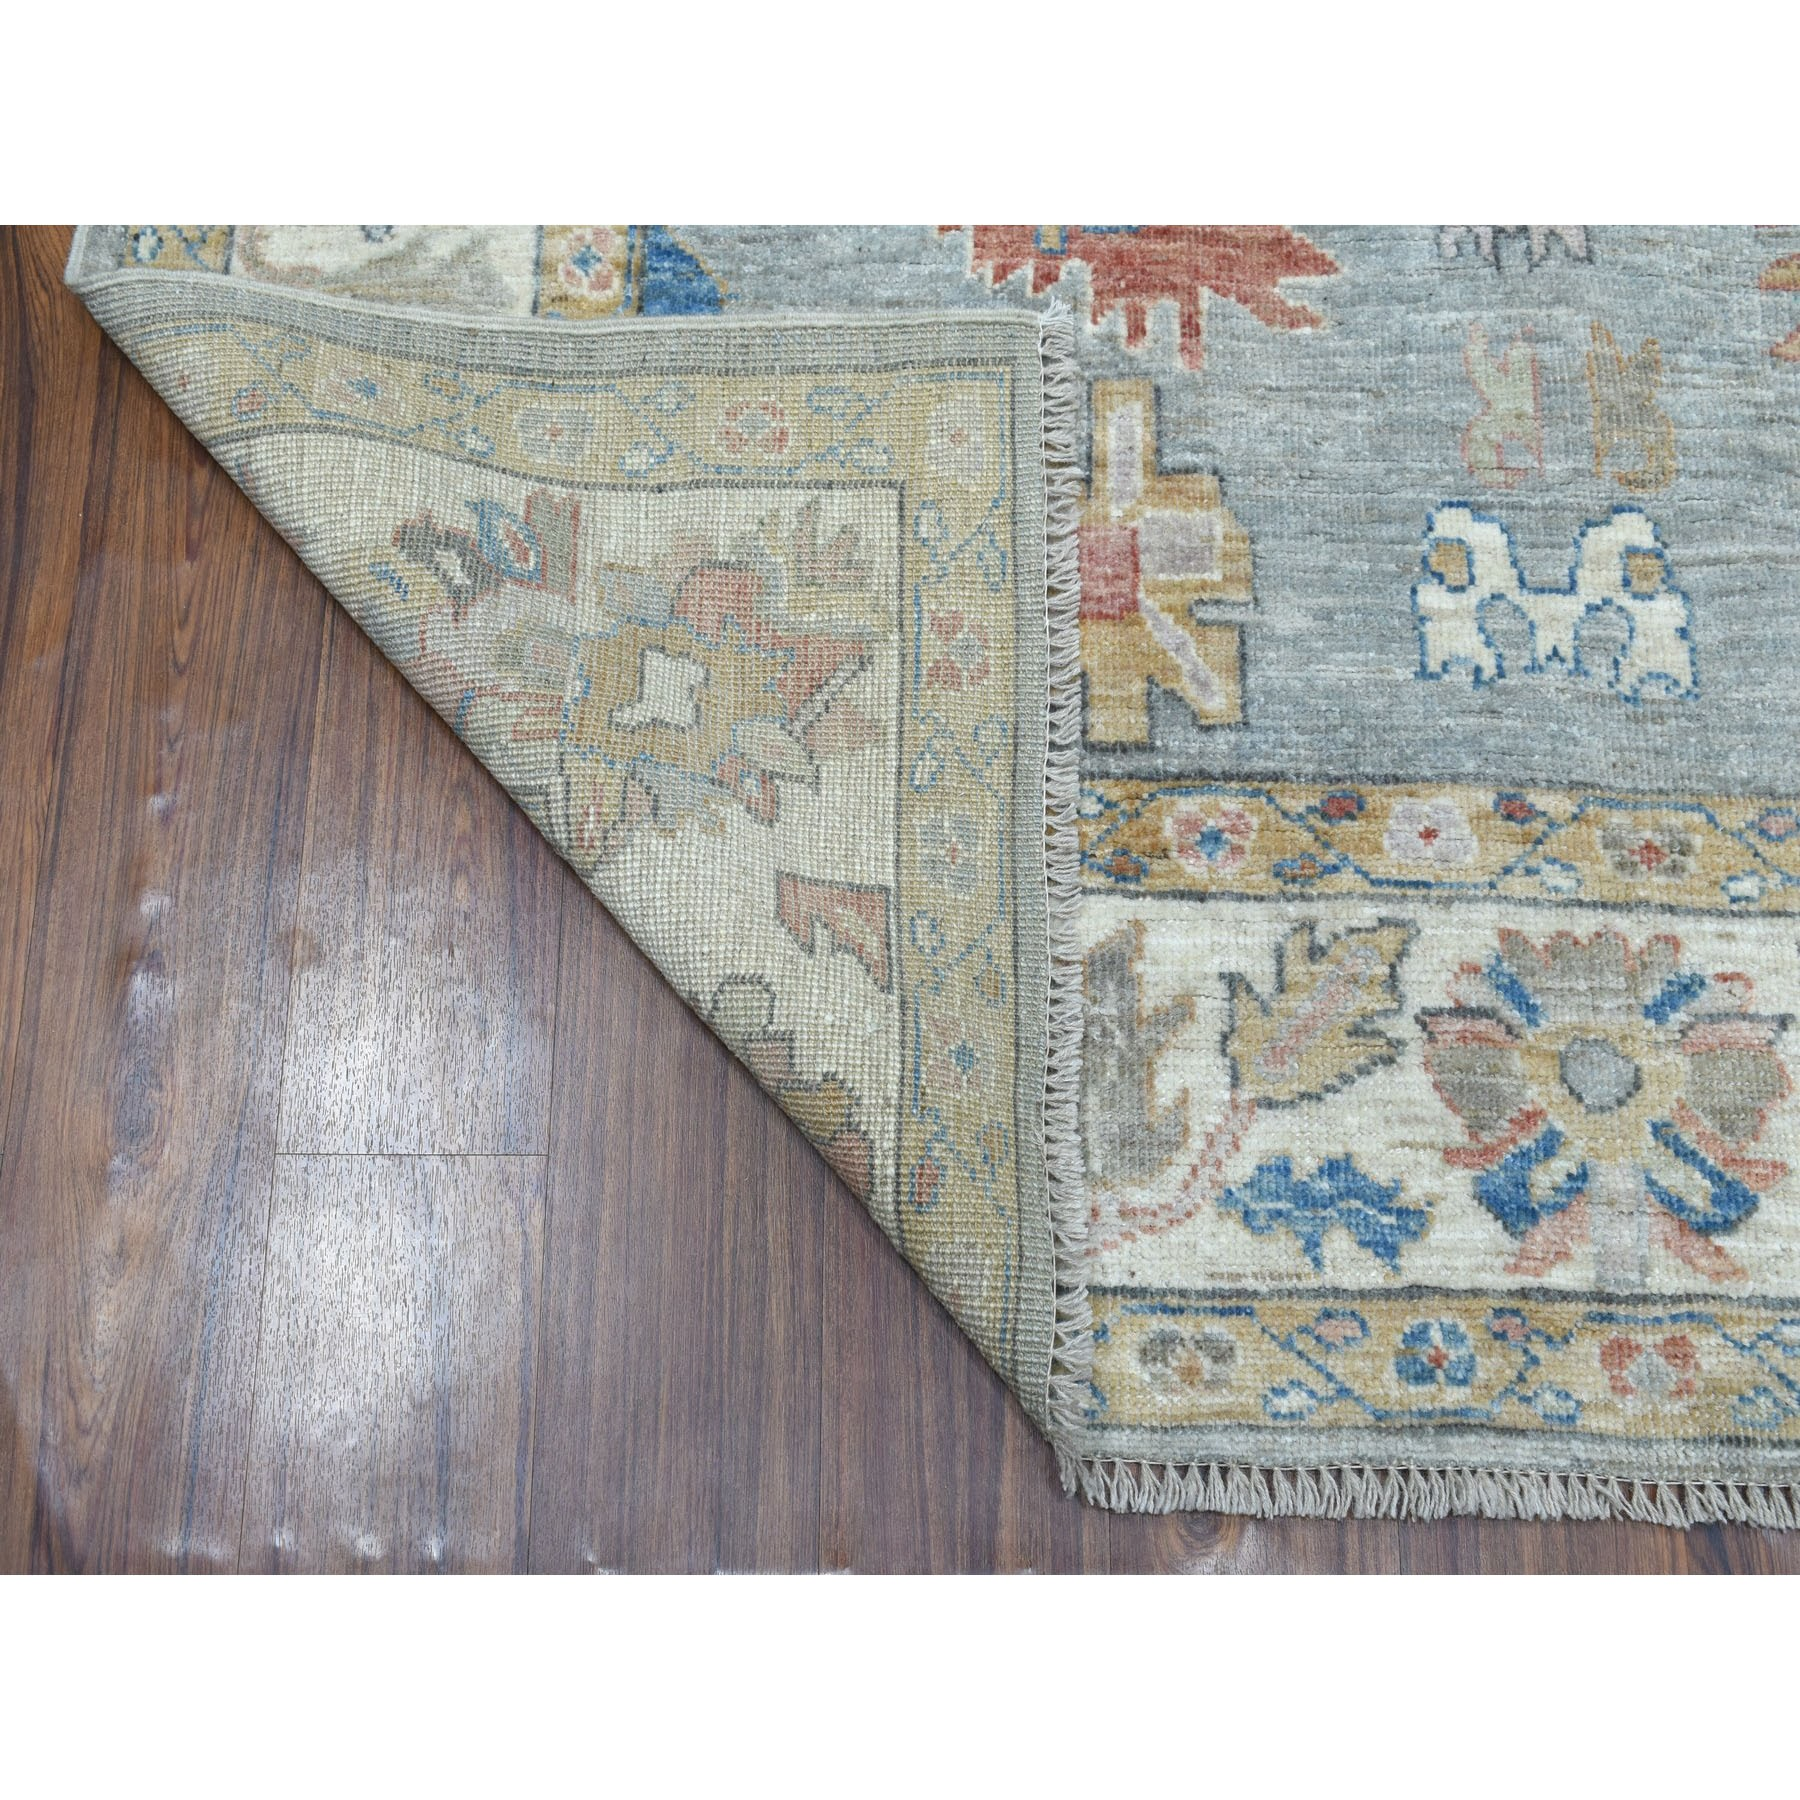 6-x8-7  Gray Angora Oushak With Soft Velvety Wool Hand Knotted Oriental Rug